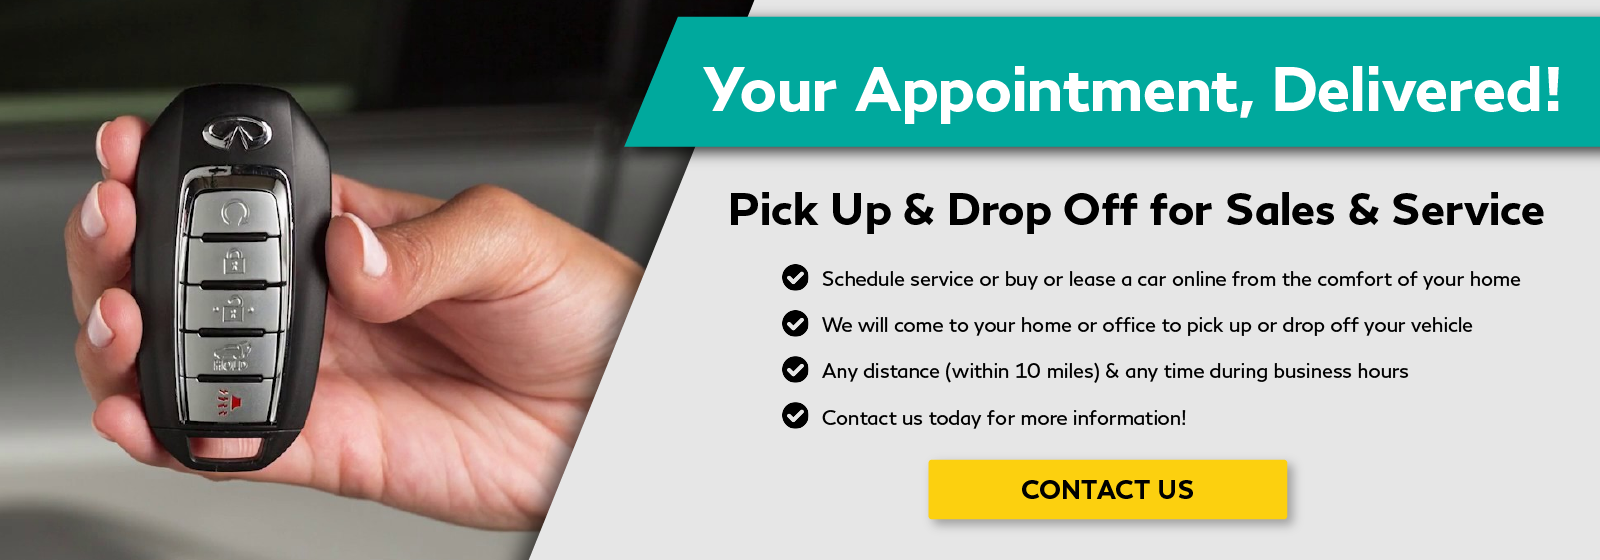 Your Appointment, Delivered! Contact us today for more information.